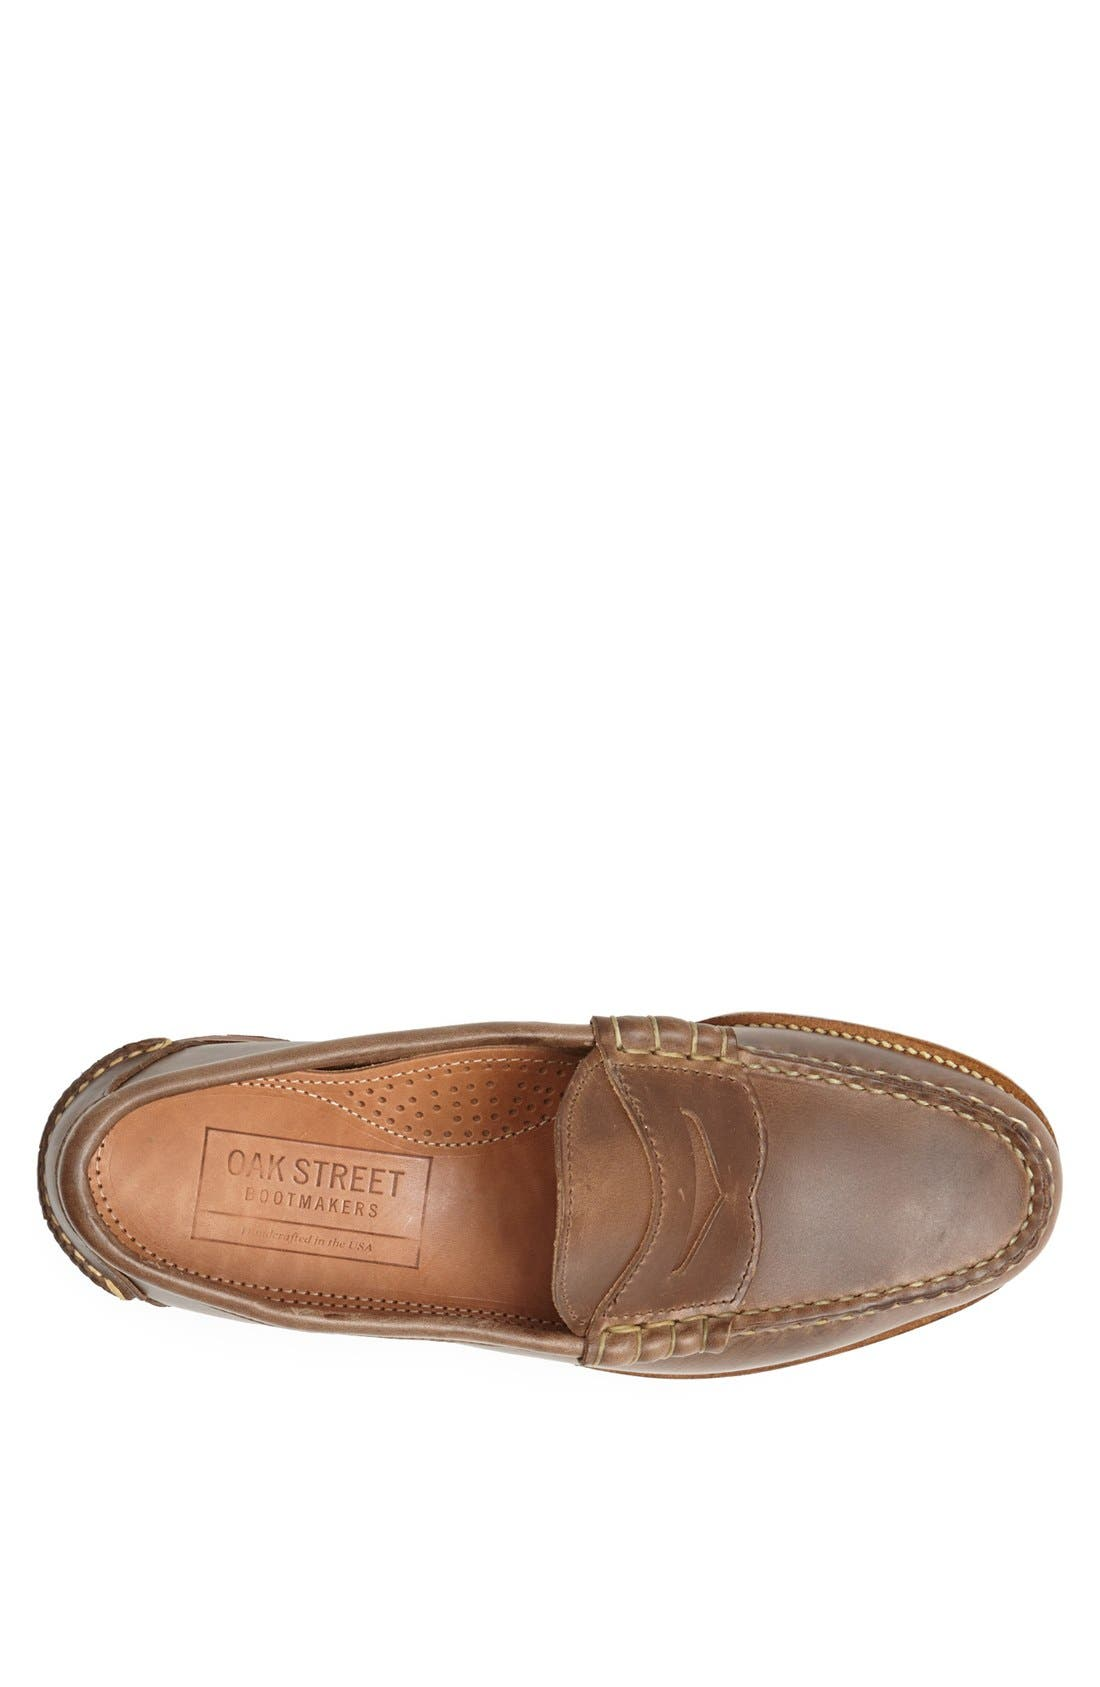 Beefroll Penny Loafer,                             Alternate thumbnail 2, color,                             NATURAL BROWN